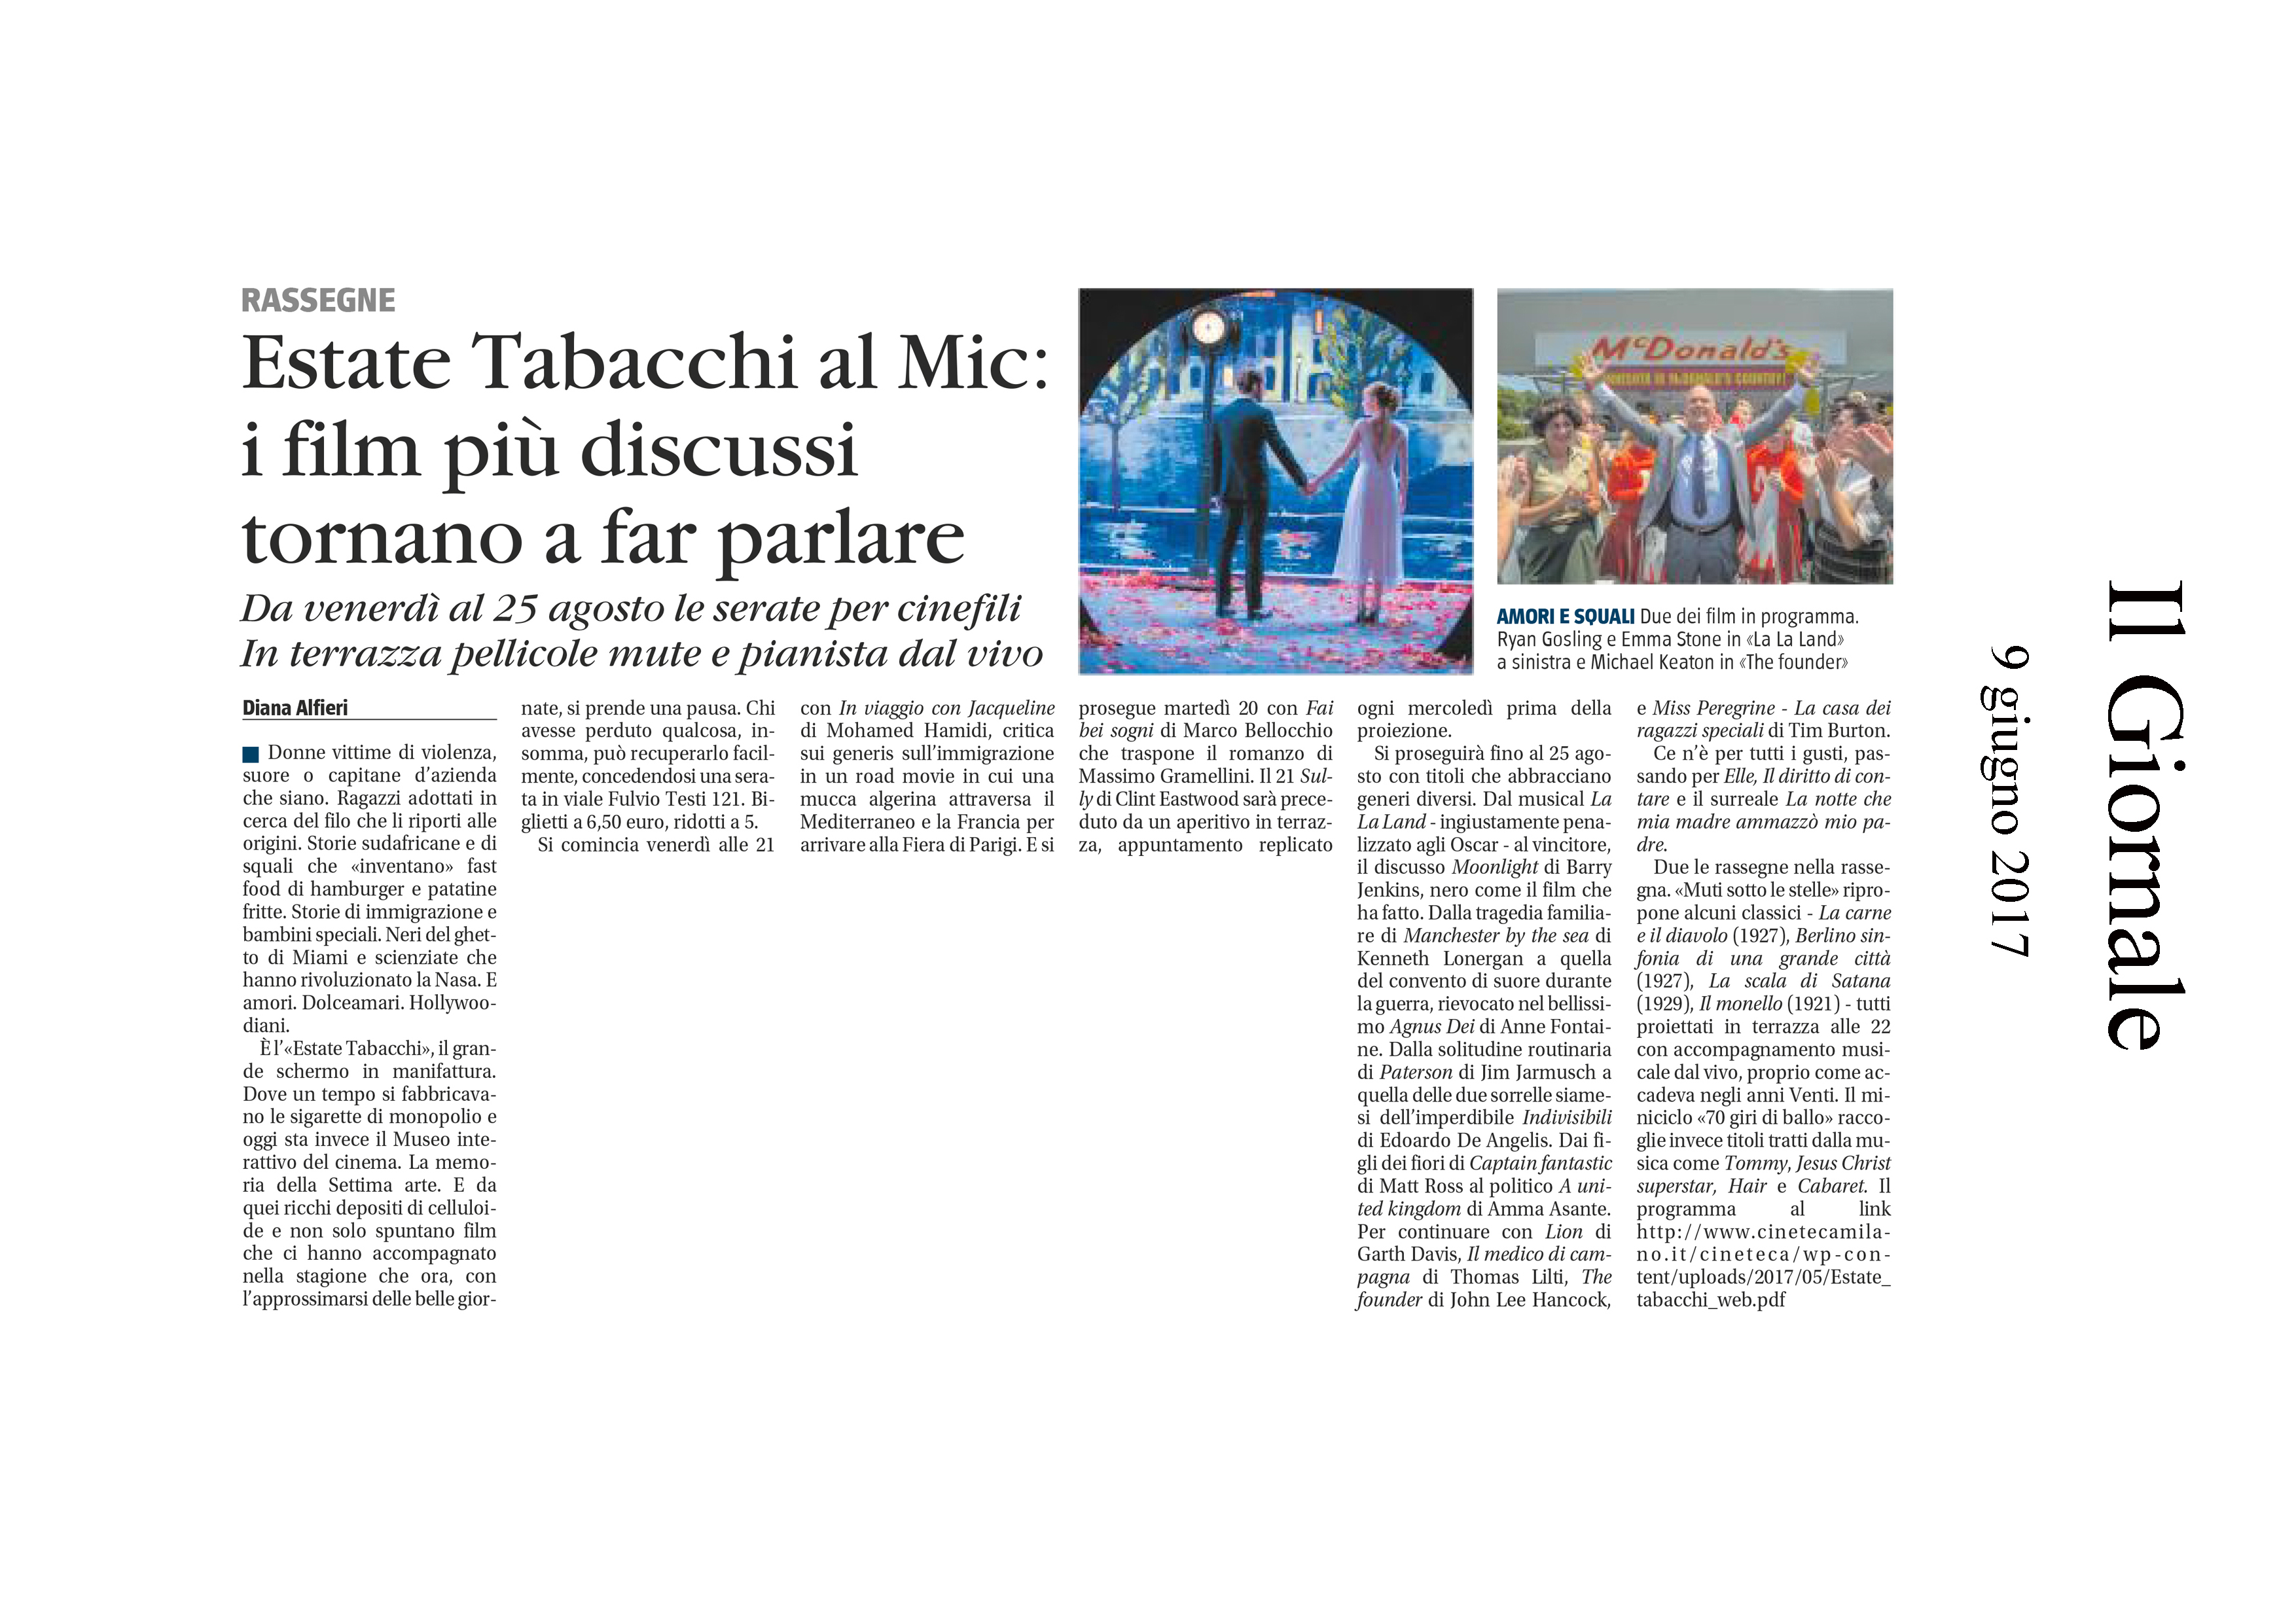 Estate Tabacchi al Mic: I film più discussi tornano a far parlare